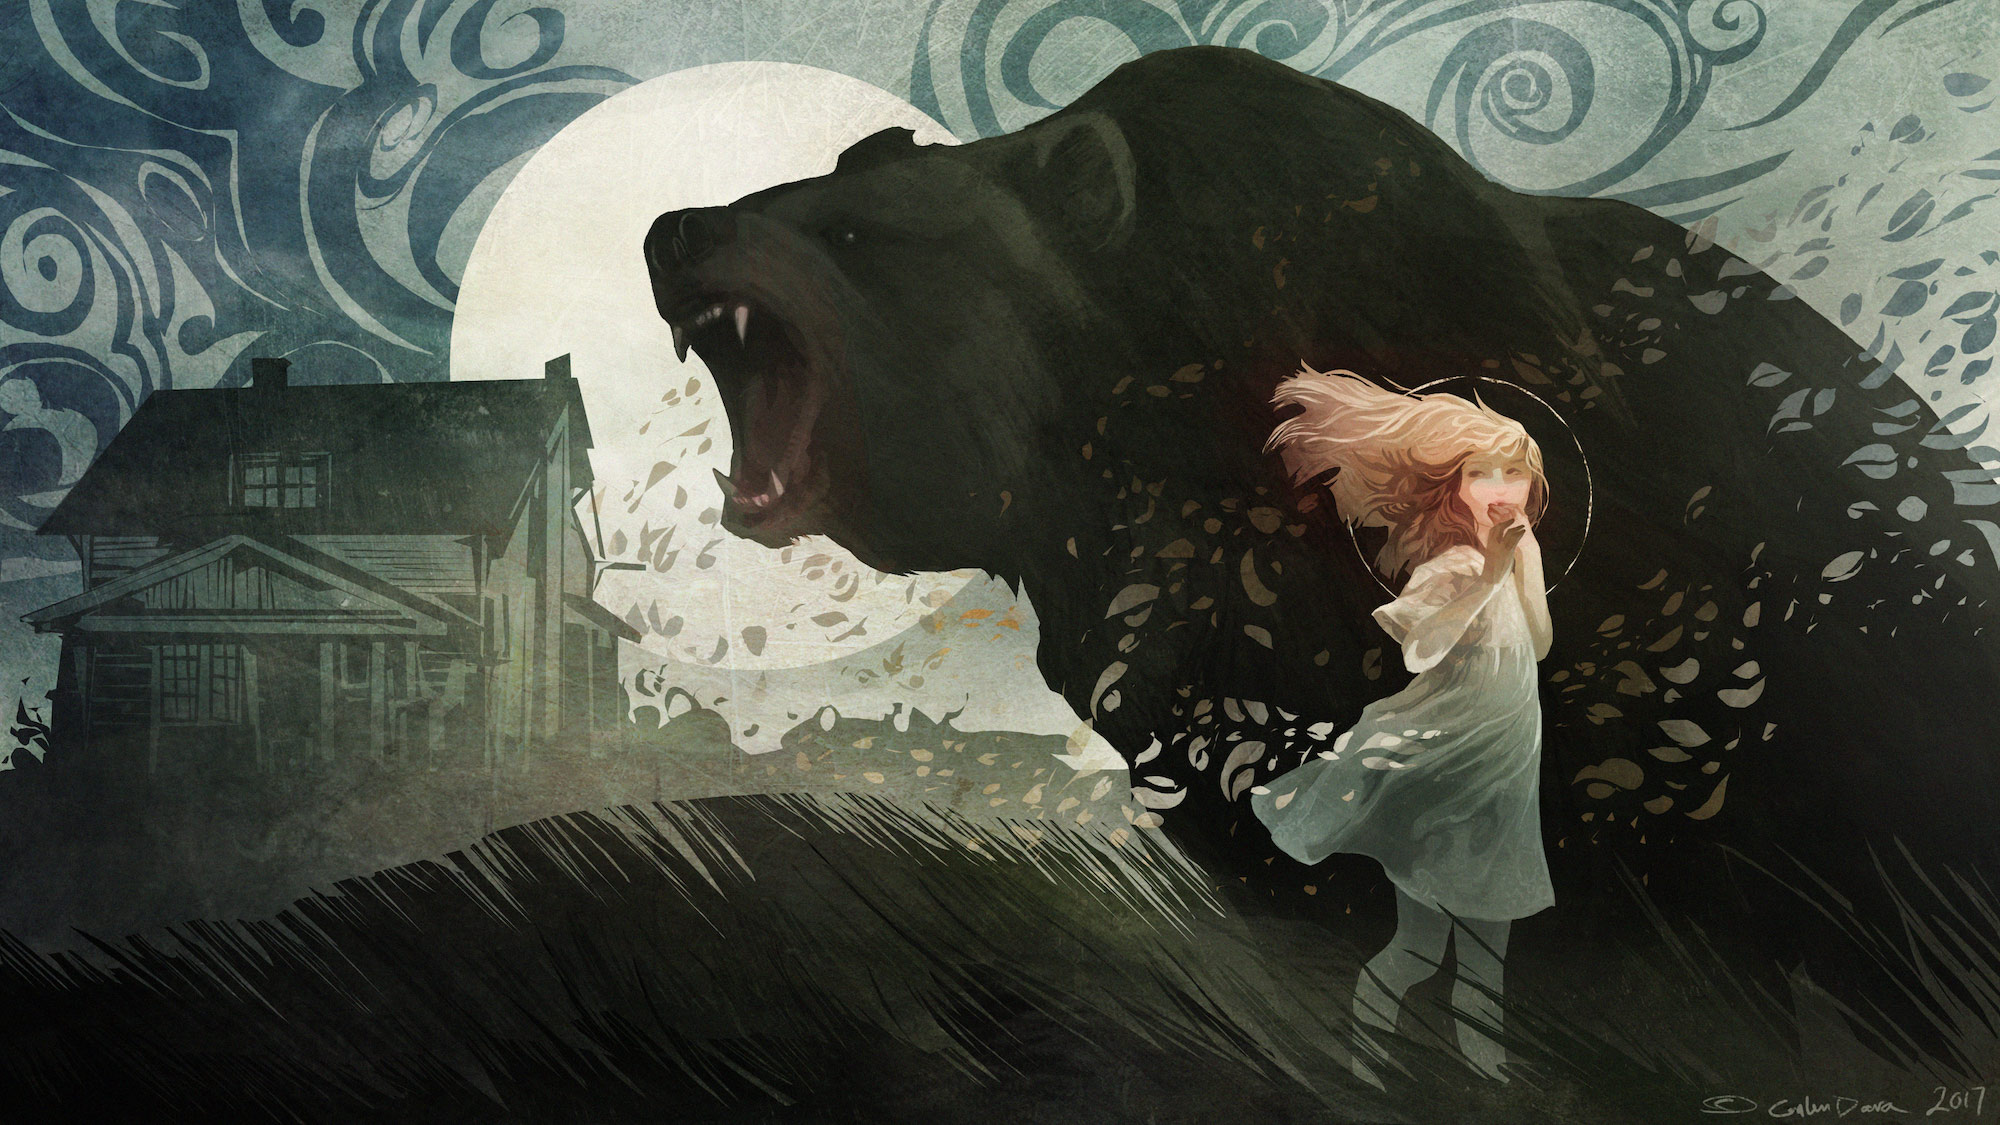 A young girl stands in front of a roaring bear. In the background is a slightly run down house and the moon, looming large above everything.